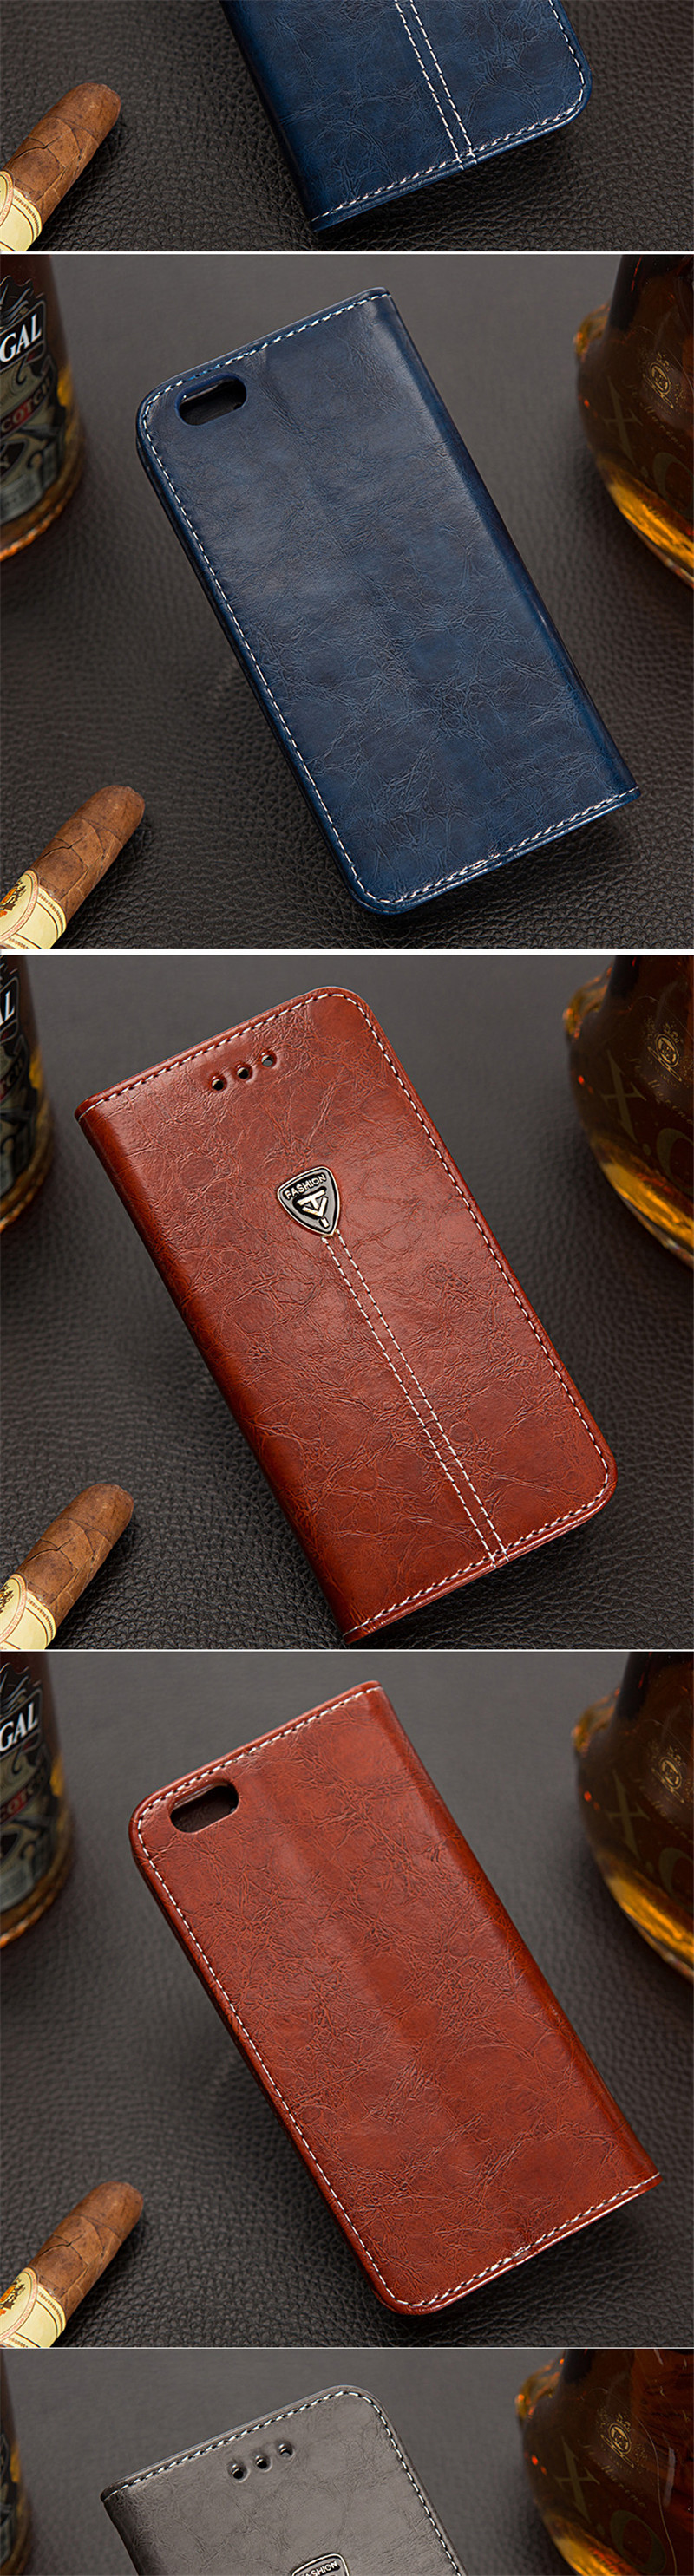 HTB1FhkVavfsK1RjSszgq6yXzpXa6 Tikitaka Flip Leather Phone Case For iPhone11 X XR XS MAX 11Pro 8Plus Wallet Card Slots Cases Soft Cover For iPhone 7 6 6s Plus